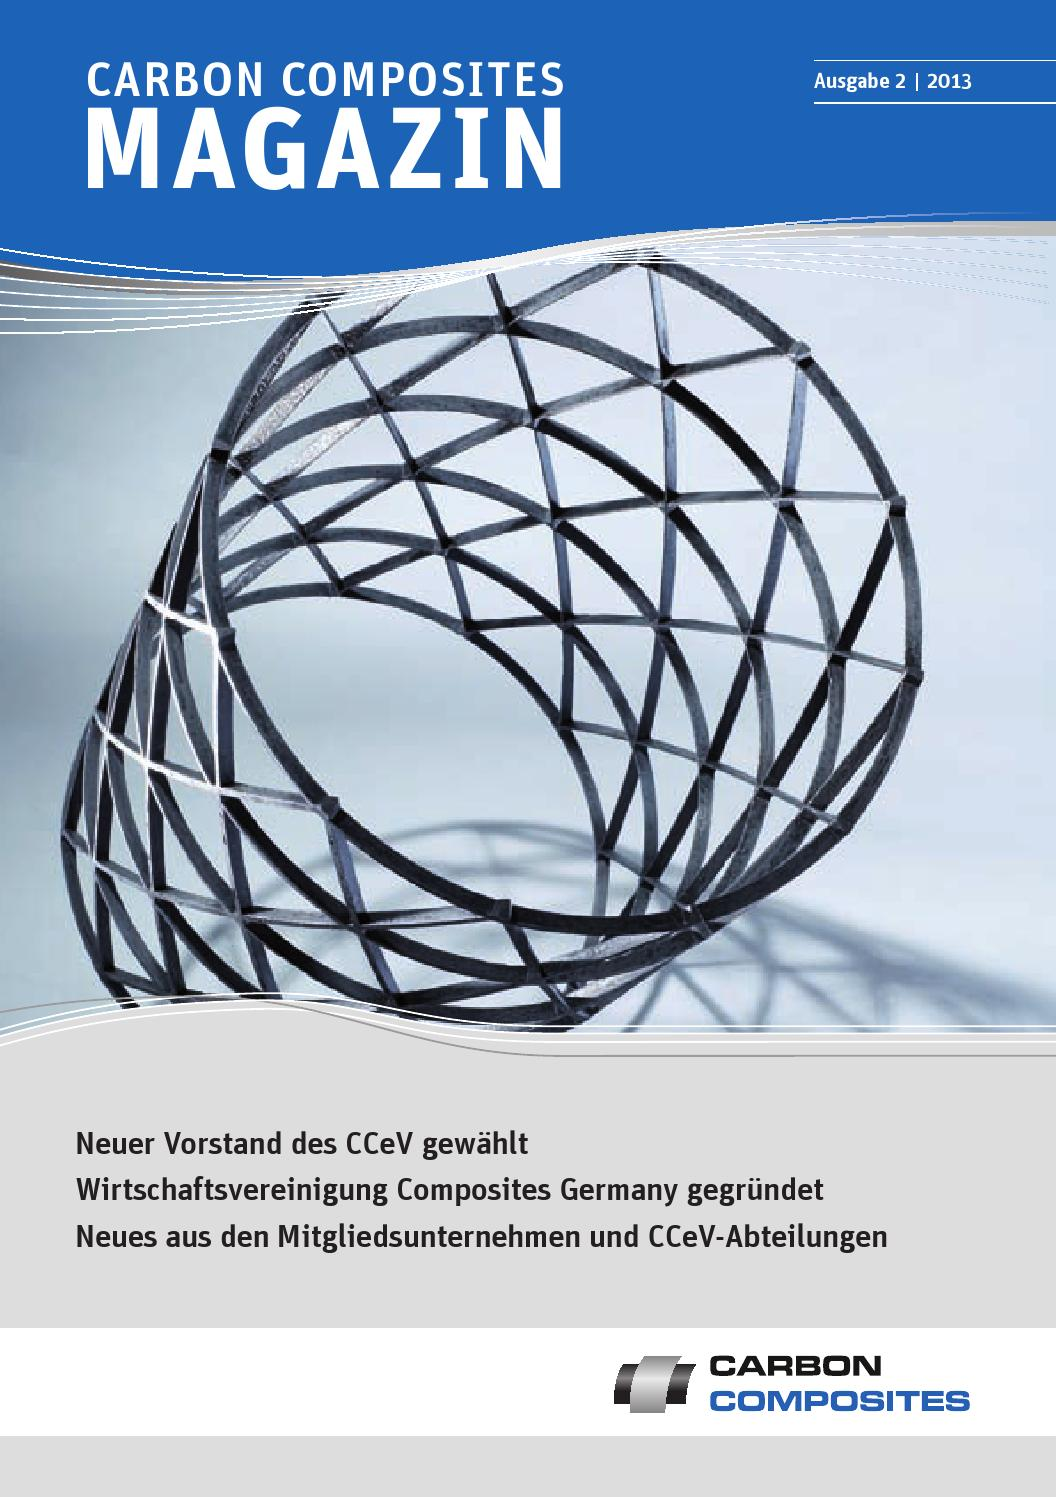 Carbon Composites Magazin - Ausgabe 02/2013 by sn82 - issuu